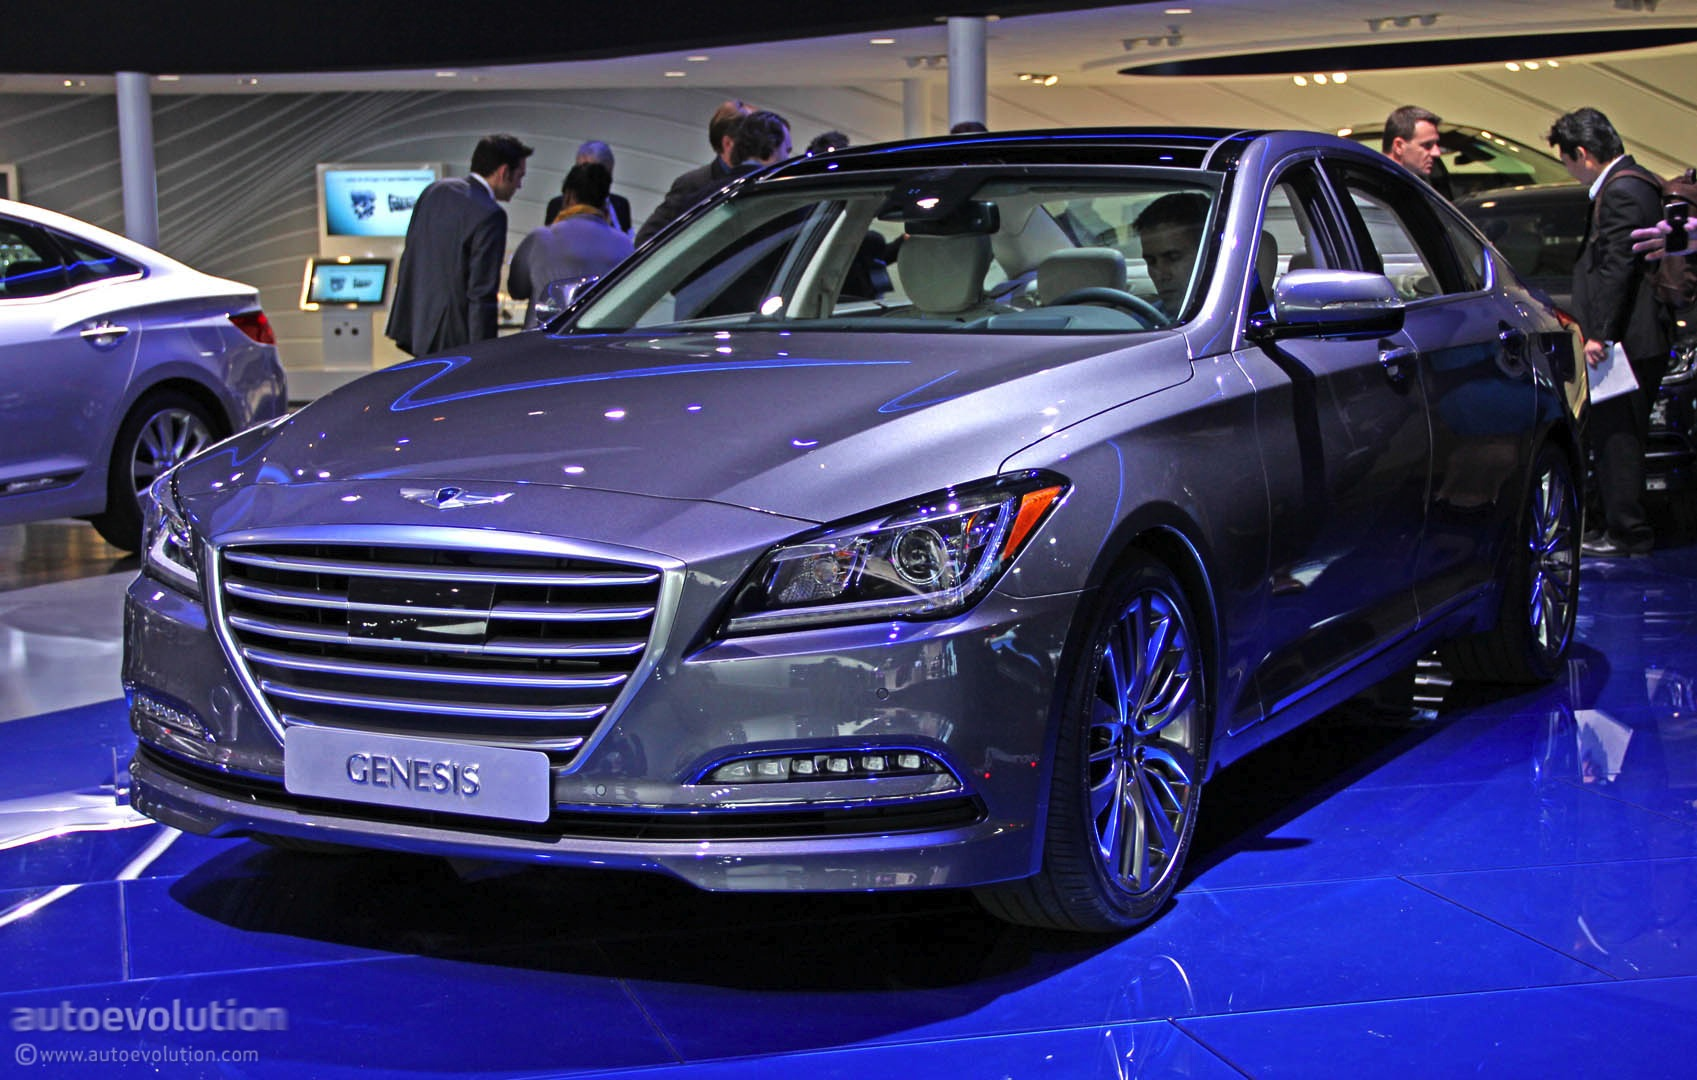 One of our favorite affordable hatchbacks is saying goodbye, and we're not at all ready to see it go. 2015 Hyundai Genesis US Pricing and Equipment Announced